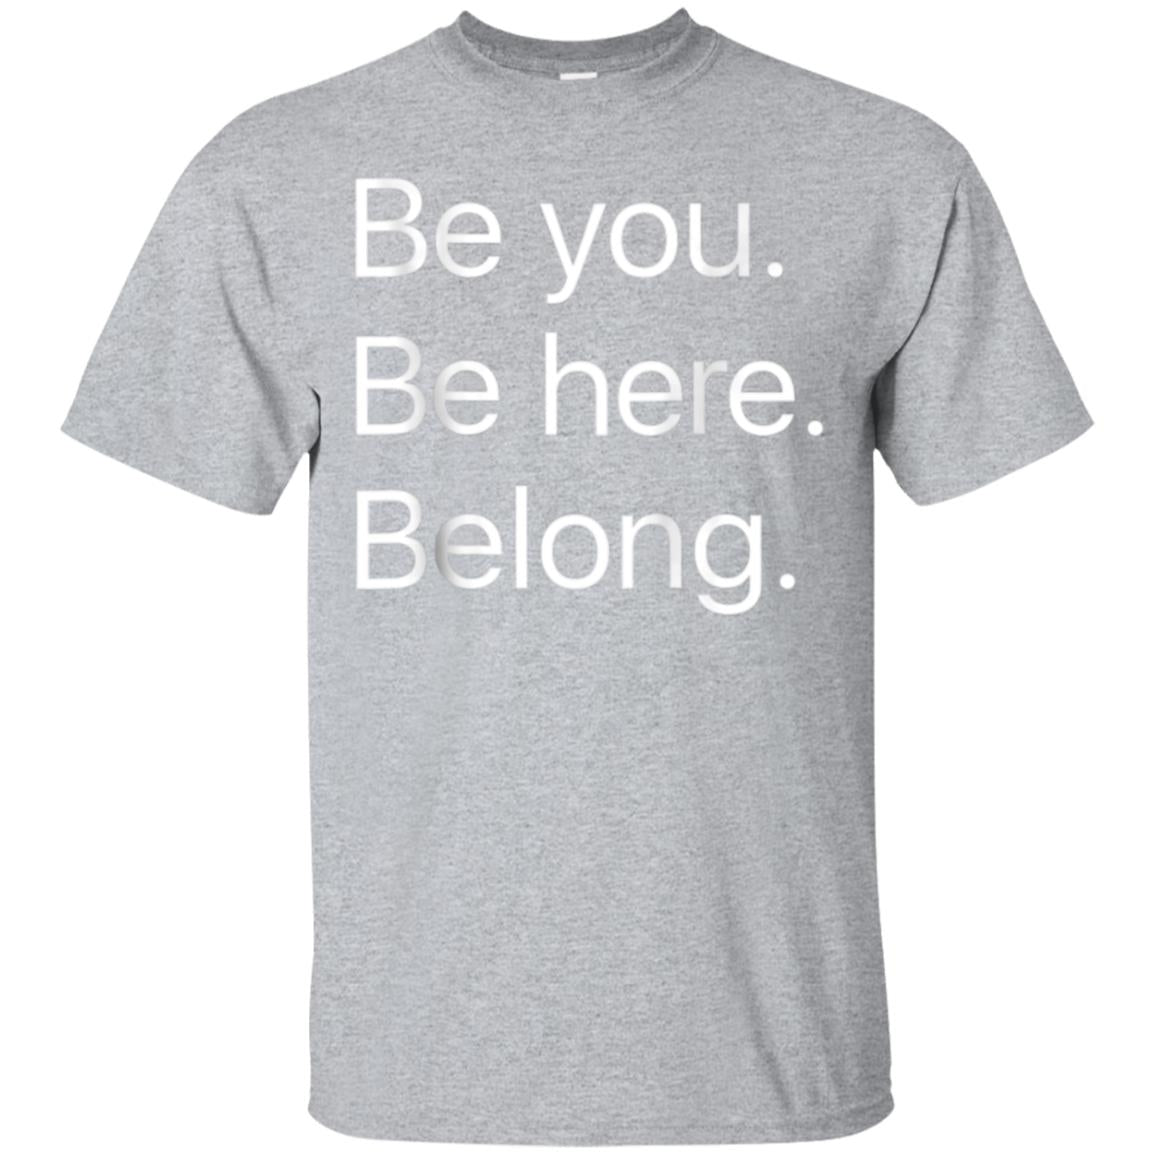 Be you. Be here. Belong. Mindfulness T-shirt 99promocode